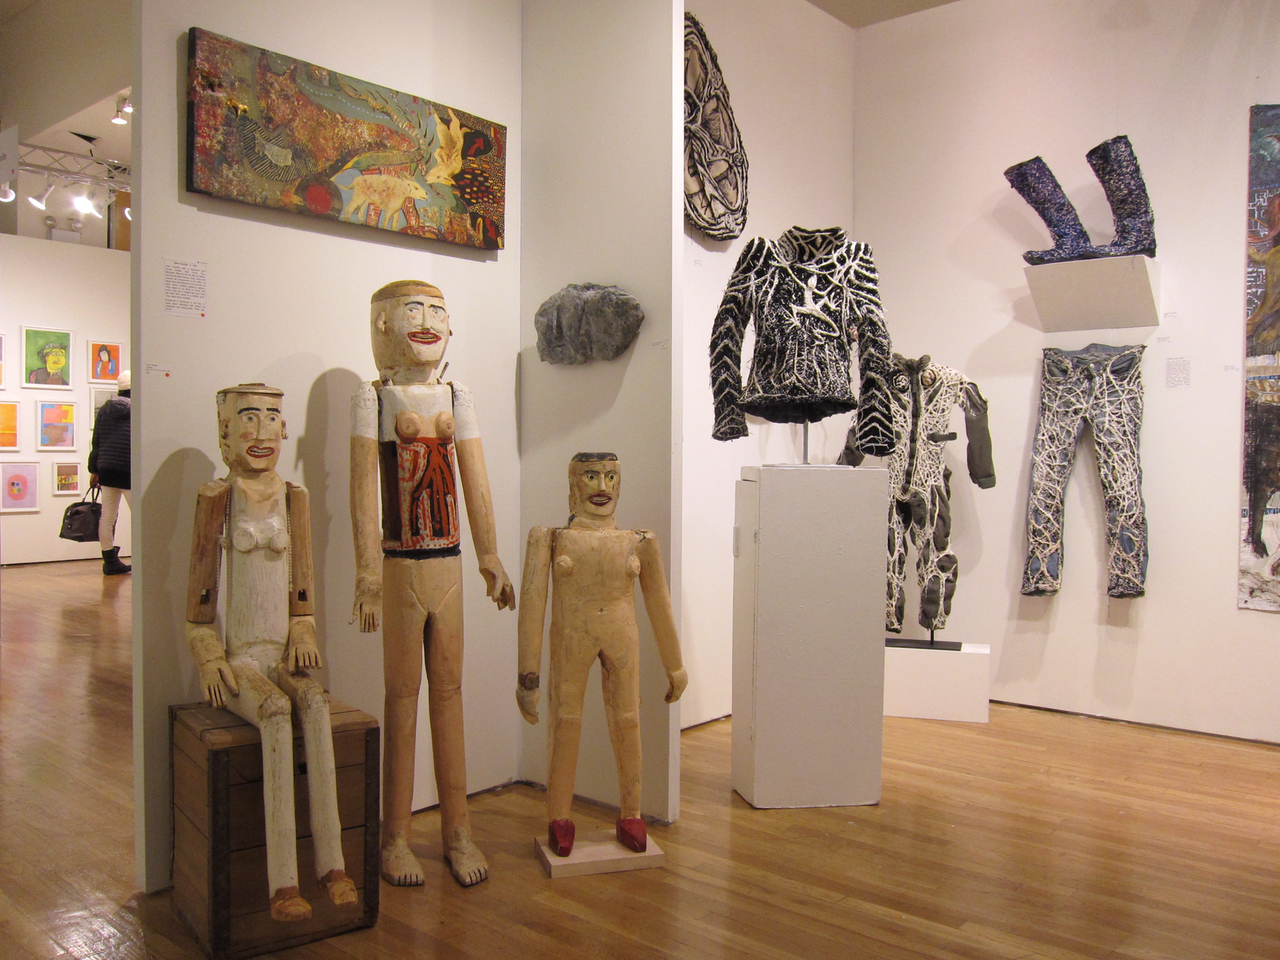 Figural sculptures by John VanZile and clothing works by Robert Adele Davis at American Primitive